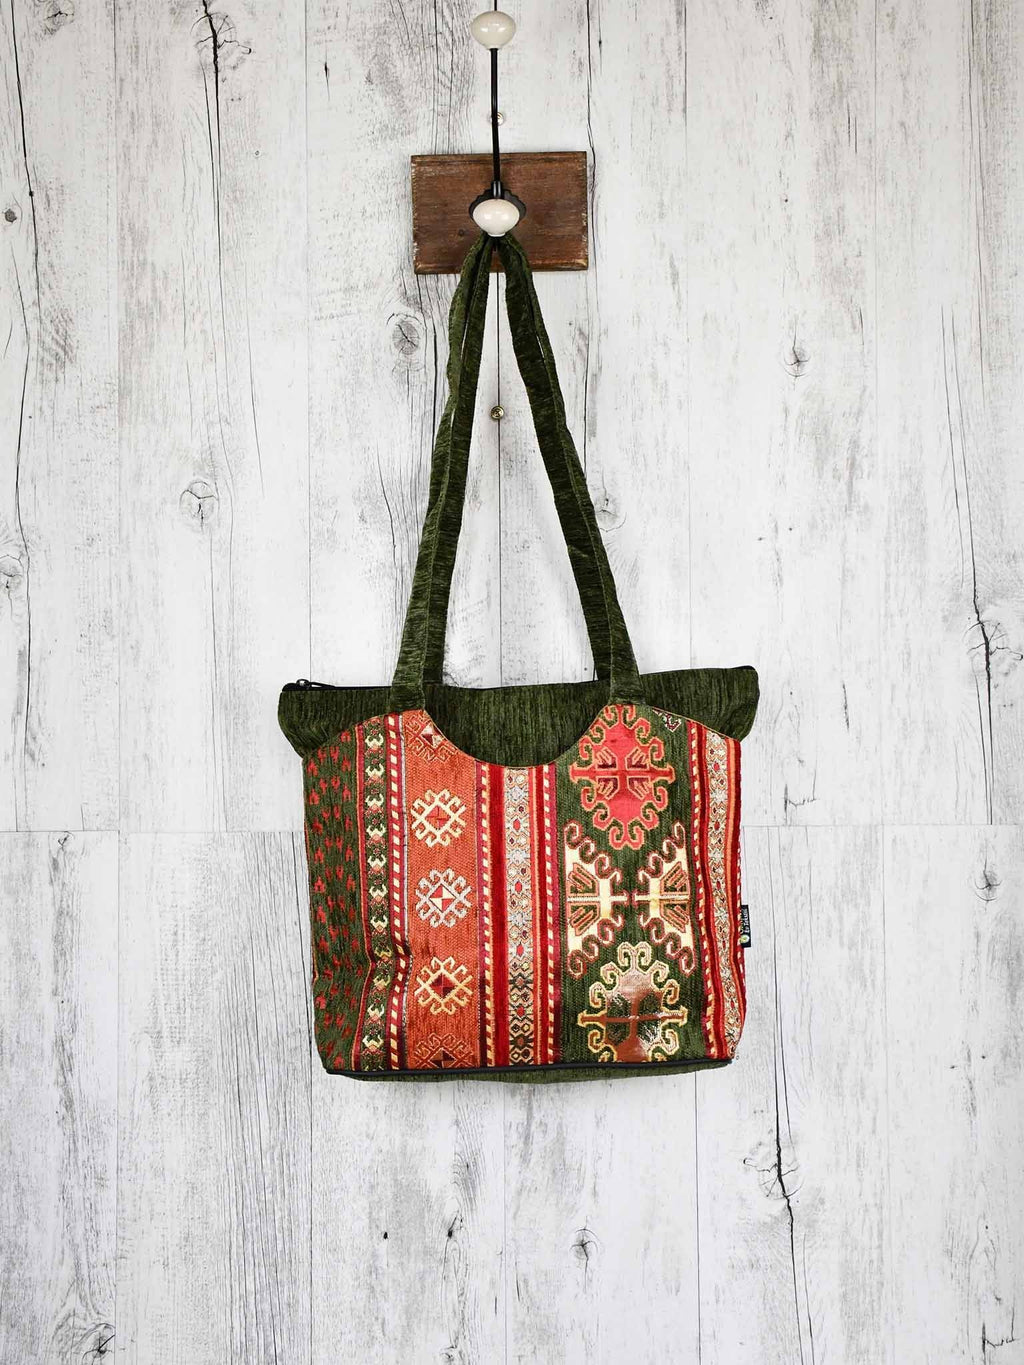 Turkish Handbag Tote Aztec Green Rusty Textile Sydney Grand Bazaar